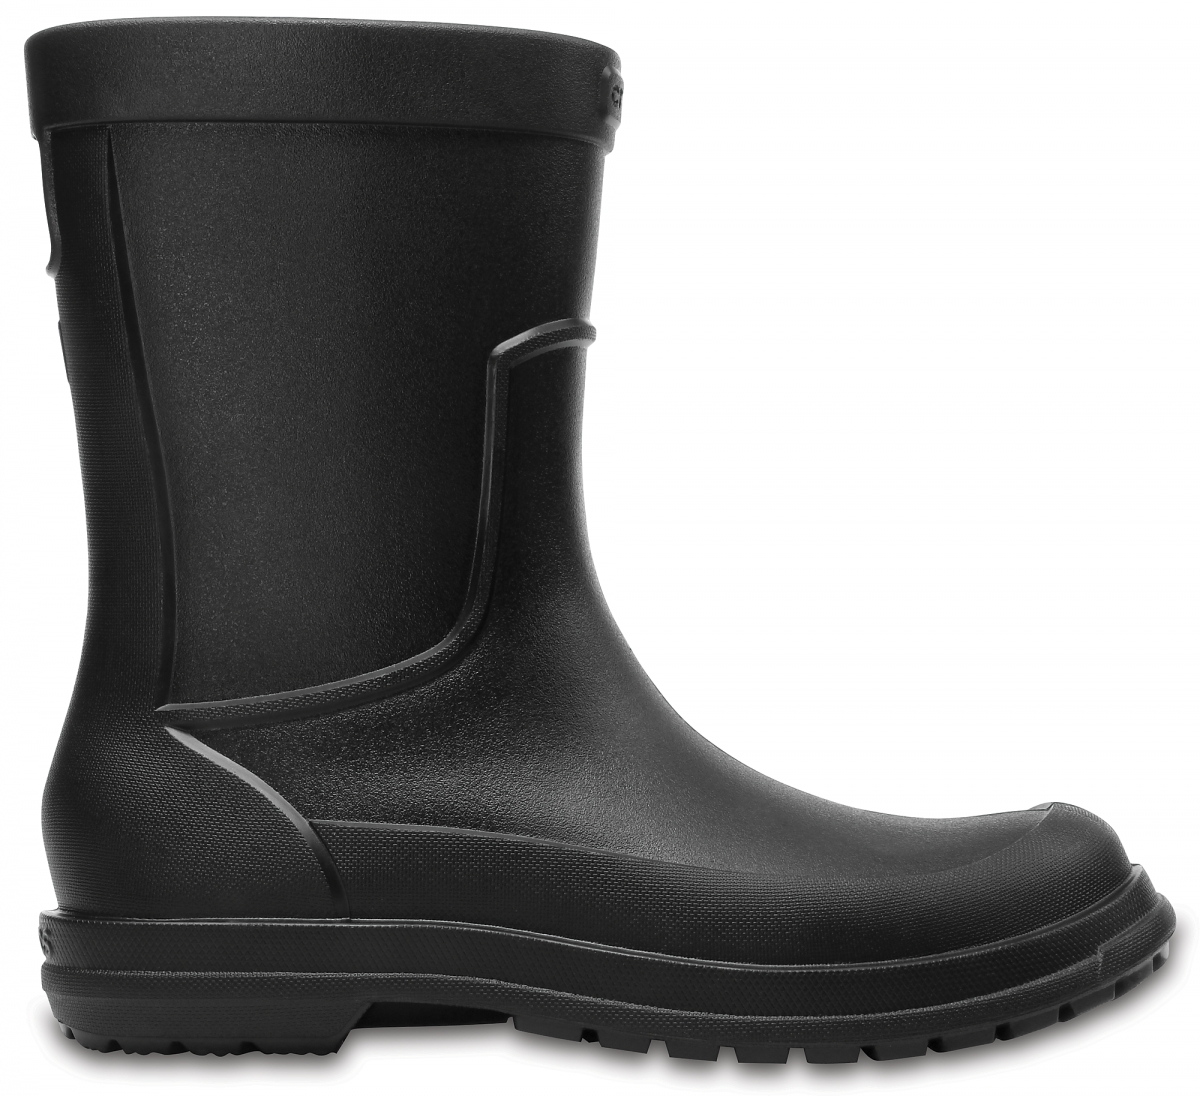 Crocs AllCast Rain Boot Men - Black, M9 (42-43)